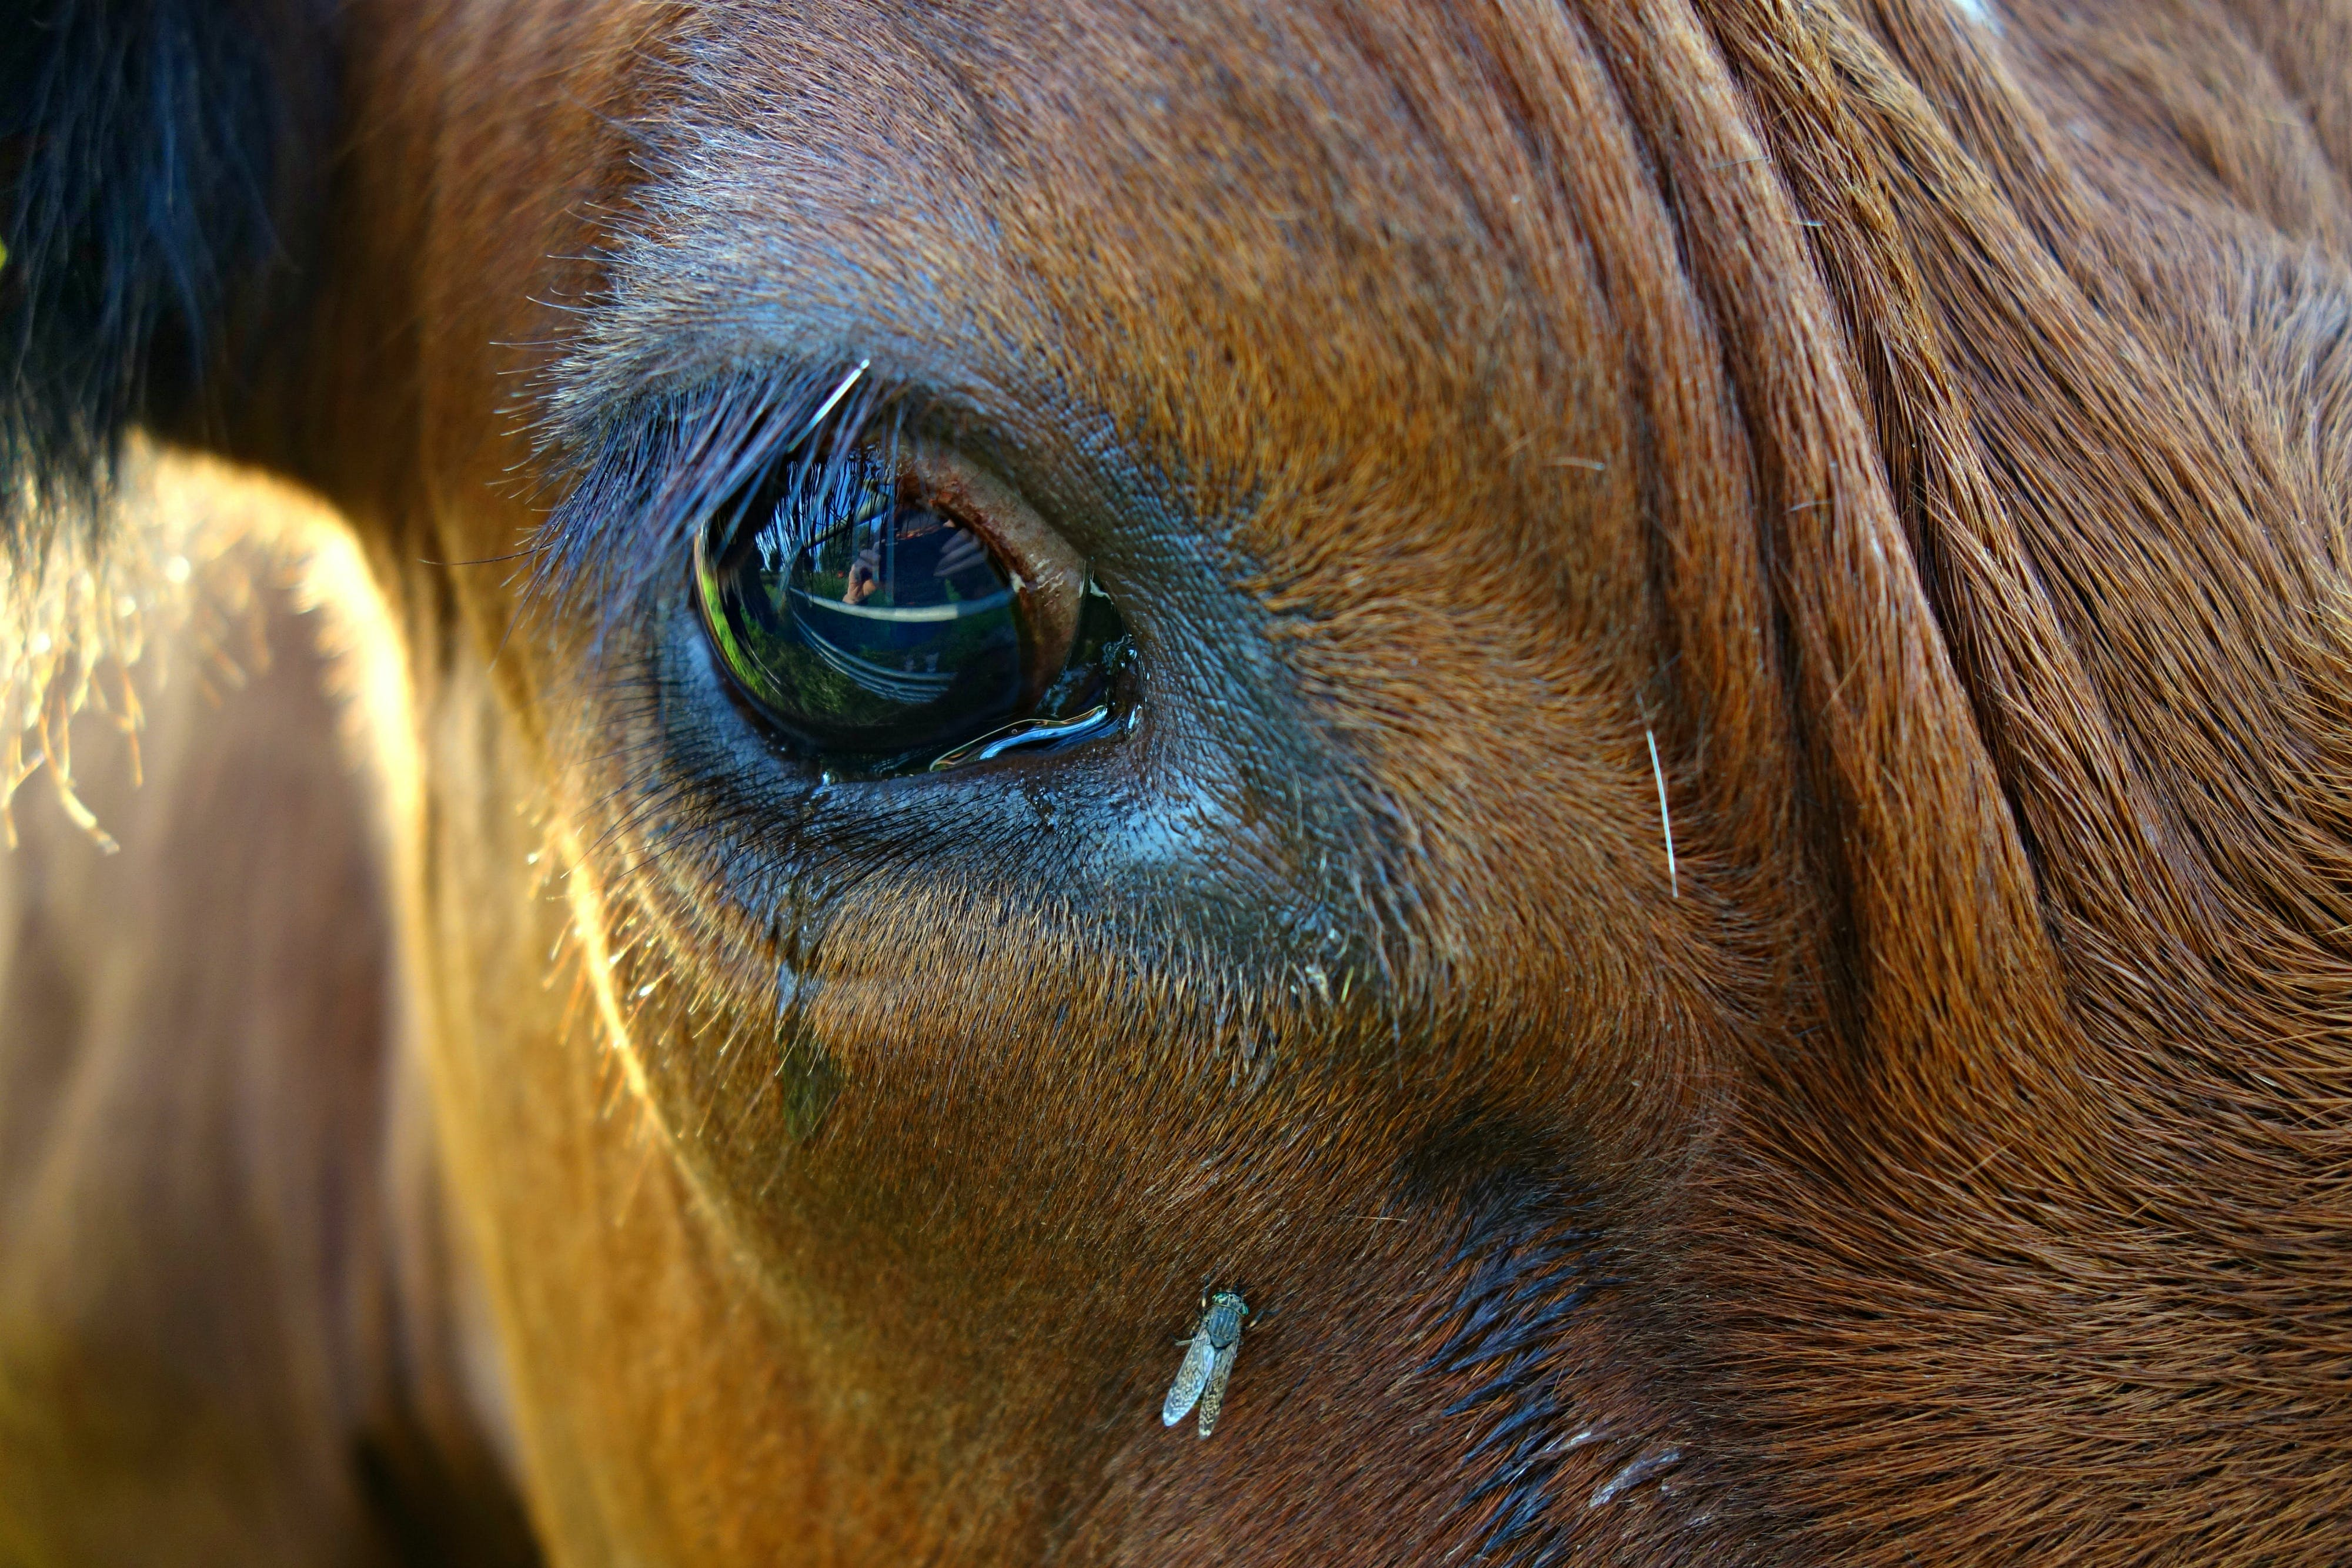 Free stock photo of animal, close up of cow's eye, cow, cow eye